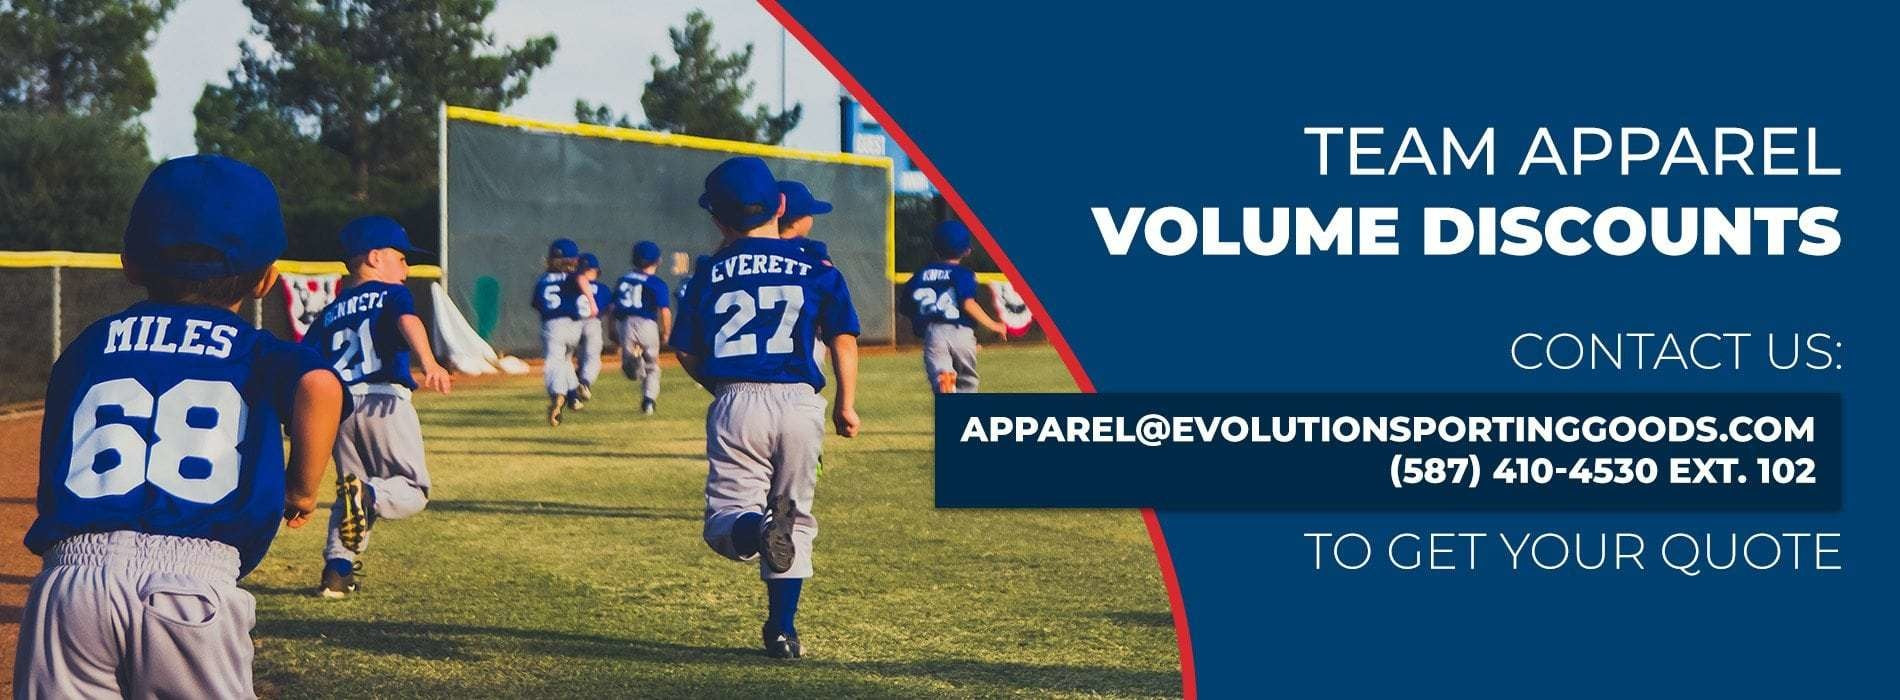 Evolution Sports Excellence | Batting Cages